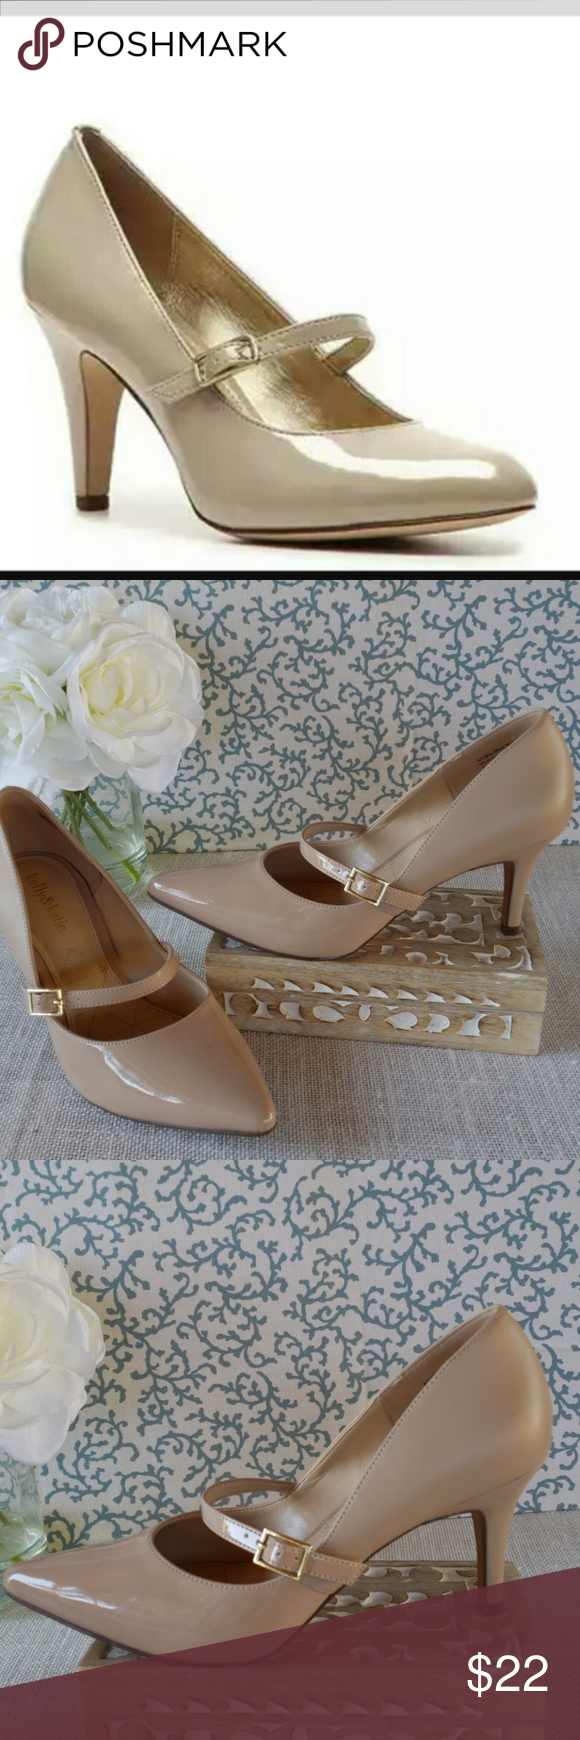 c879345bb1a KELLY   KATIE NUDE MARY JANE PUMPS KELLY   KATIE NUDE MARY JANE PUMPS  ADJUSTABLE STRAPS 3.5